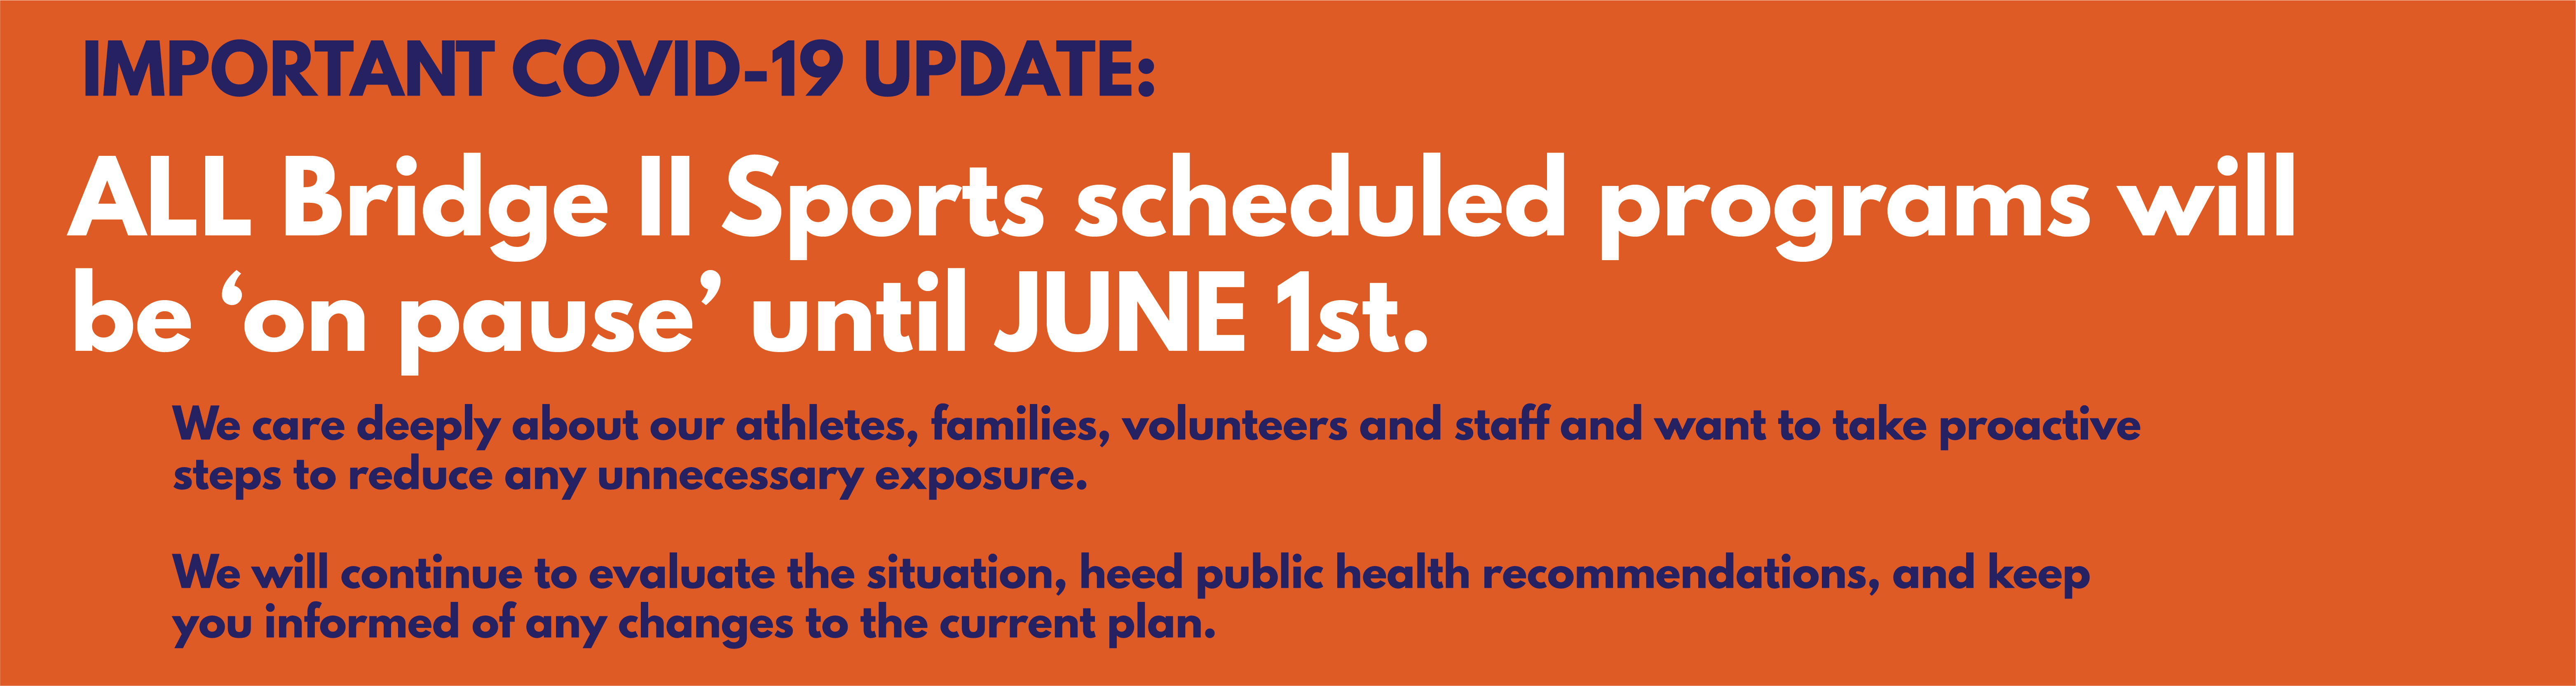 ALL Bridge II Sports scheduled programs will be 'on pause' until JUNE 1st.